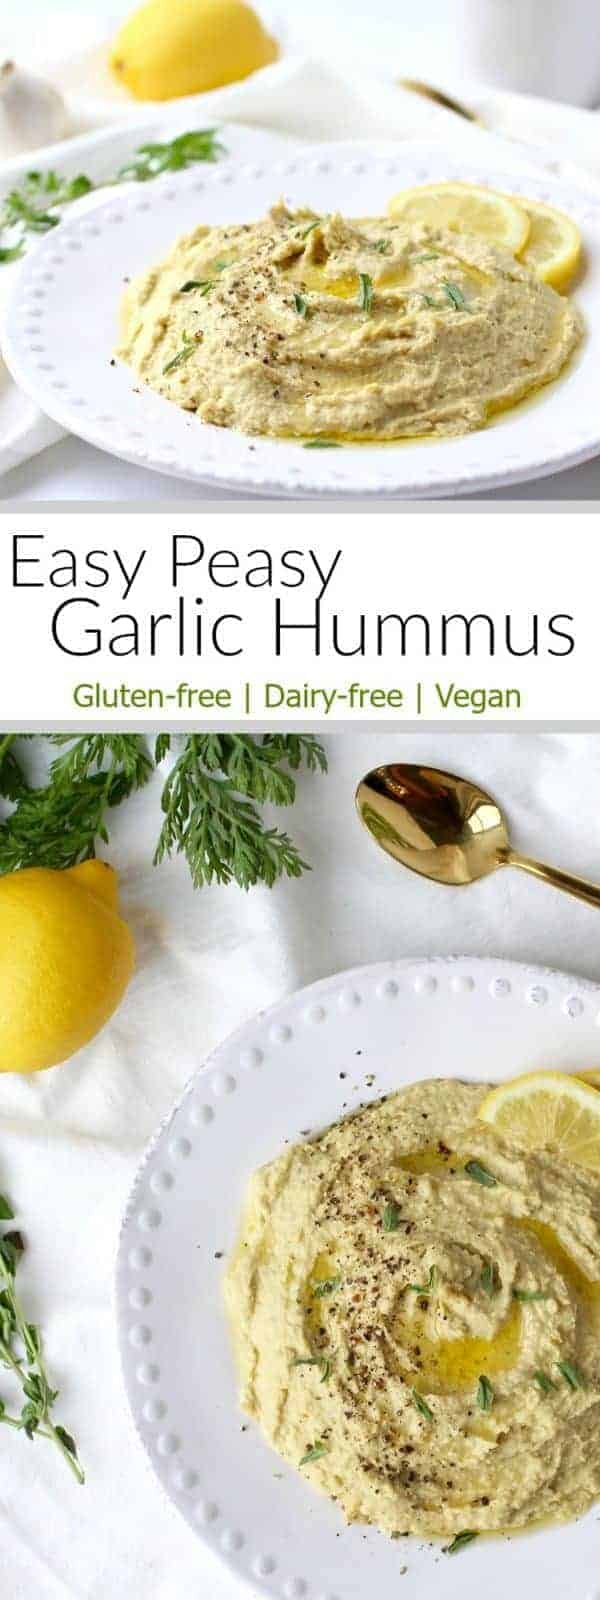 Easy Peasy Garlic Hummus | how to make homemade hummus | easy hummus recipes | garlic hummus recipes | healthy appetizer recipes | healthy dip recipes | gluten-free hummus recipes | dairy-free hummus recipes | vegan hummus recipes | gluten free appetizers | dairy free appetizers | vegan appetizers || The Real Food Dietitians